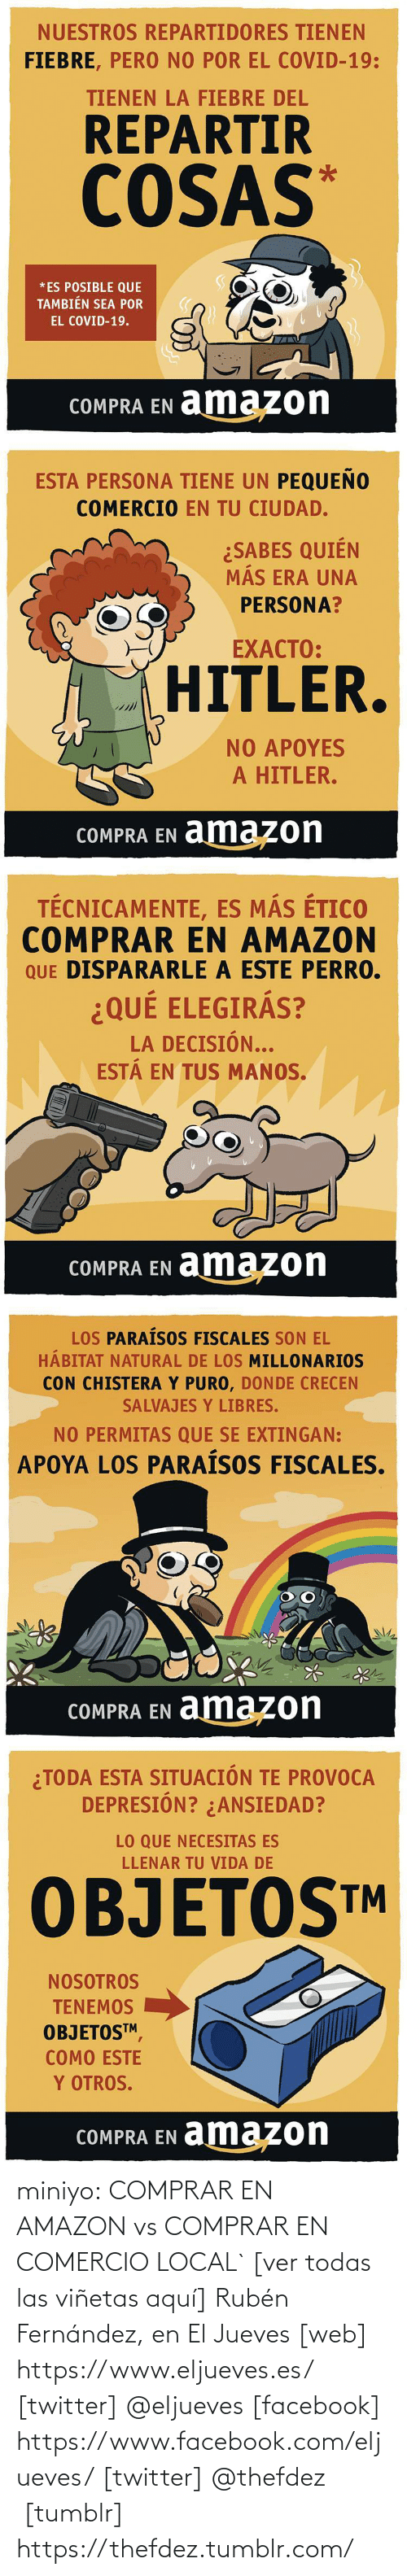 local: miniyo:  COMPRAR EN AMAZON vs COMPRAR EN COMERCIO LOCAL` [ver todas las viñetas aquí] Rubén Fernández, en El Jueves [web] https://www.eljueves.es/ [twitter] @eljueves [facebook] https://www.facebook.com/eljueves/ [twitter] @thefdez   [tumblr] https://thefdez.tumblr.com/